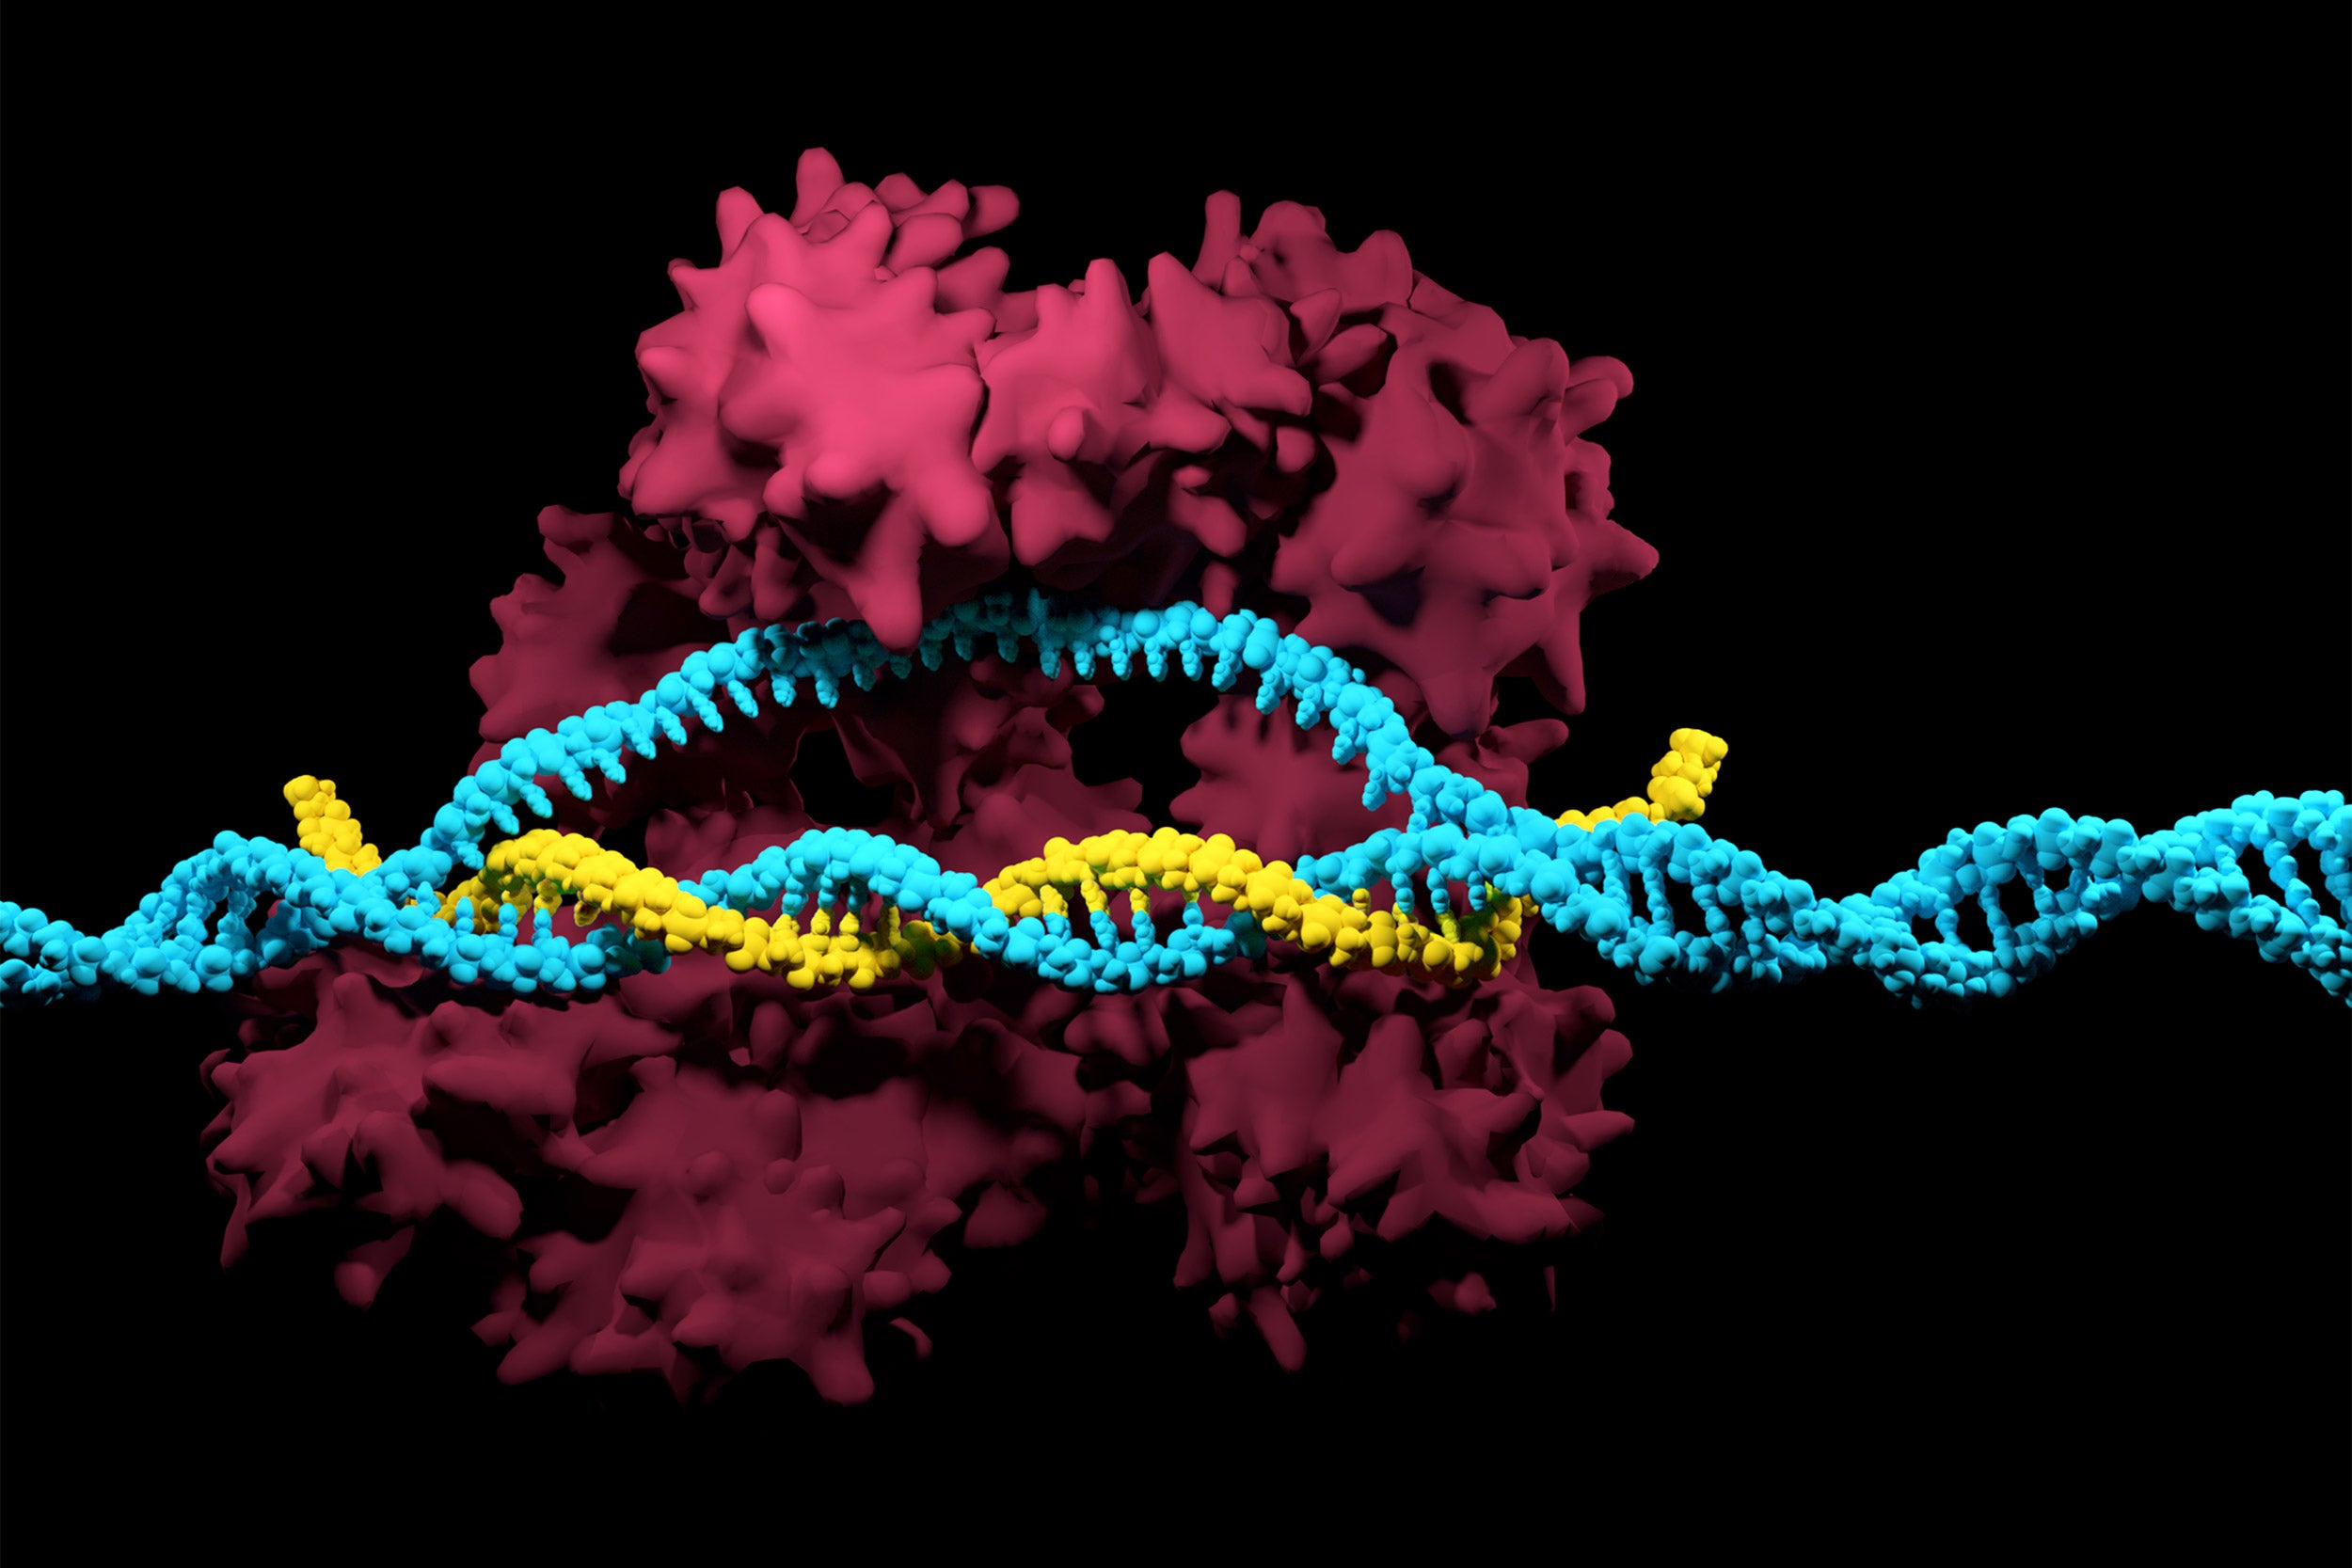 3D render of the CRISPR-Cas9 genome editing system